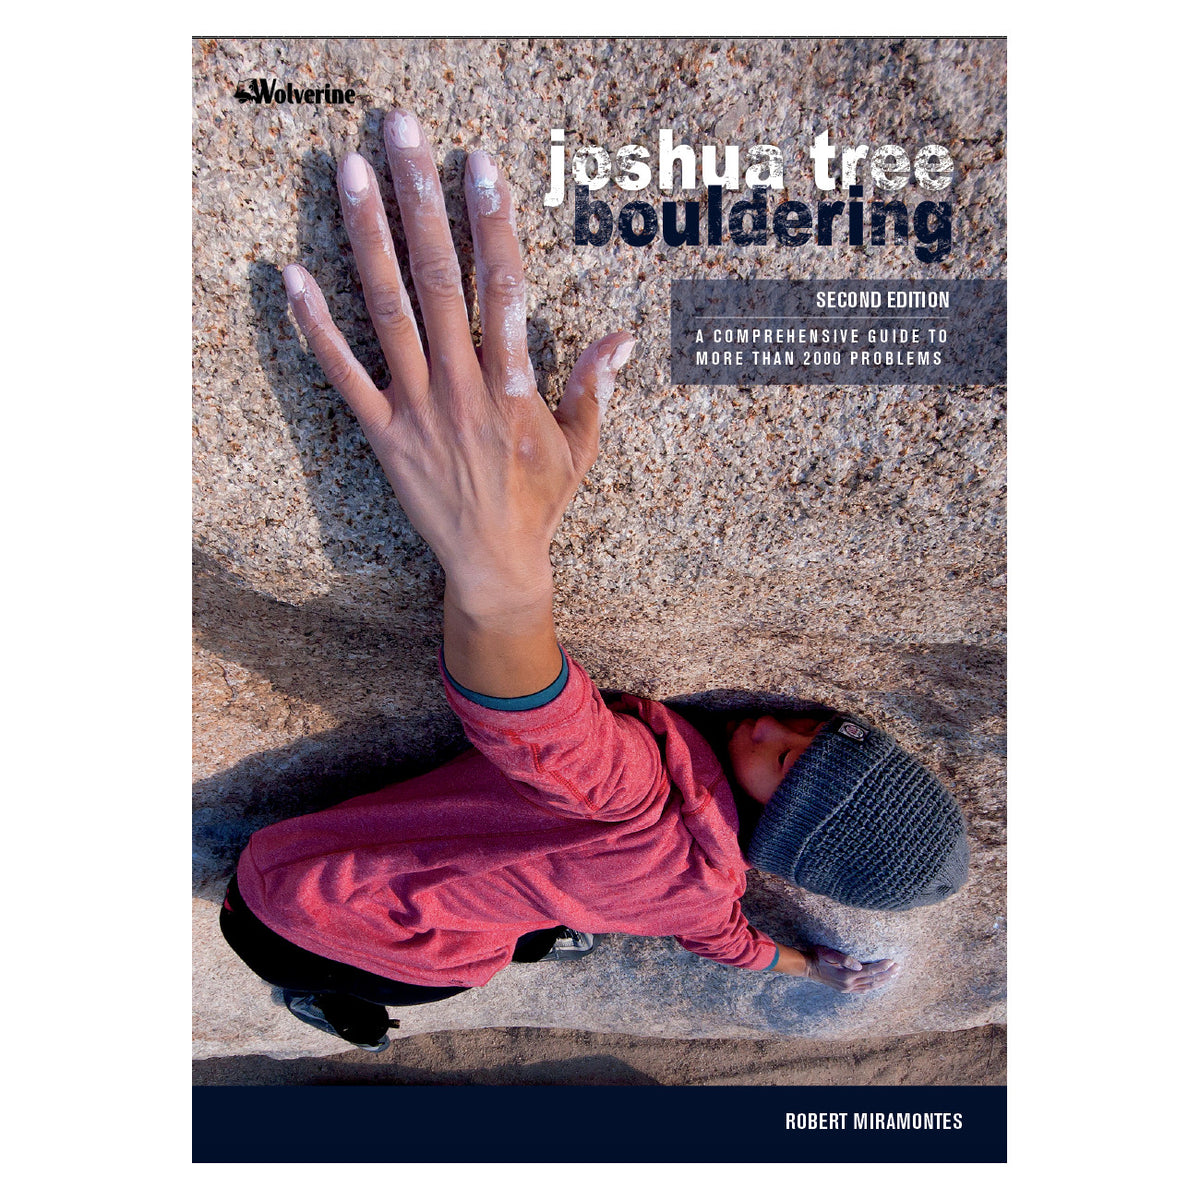 Joshua Tree Bouldering 2nd Edition